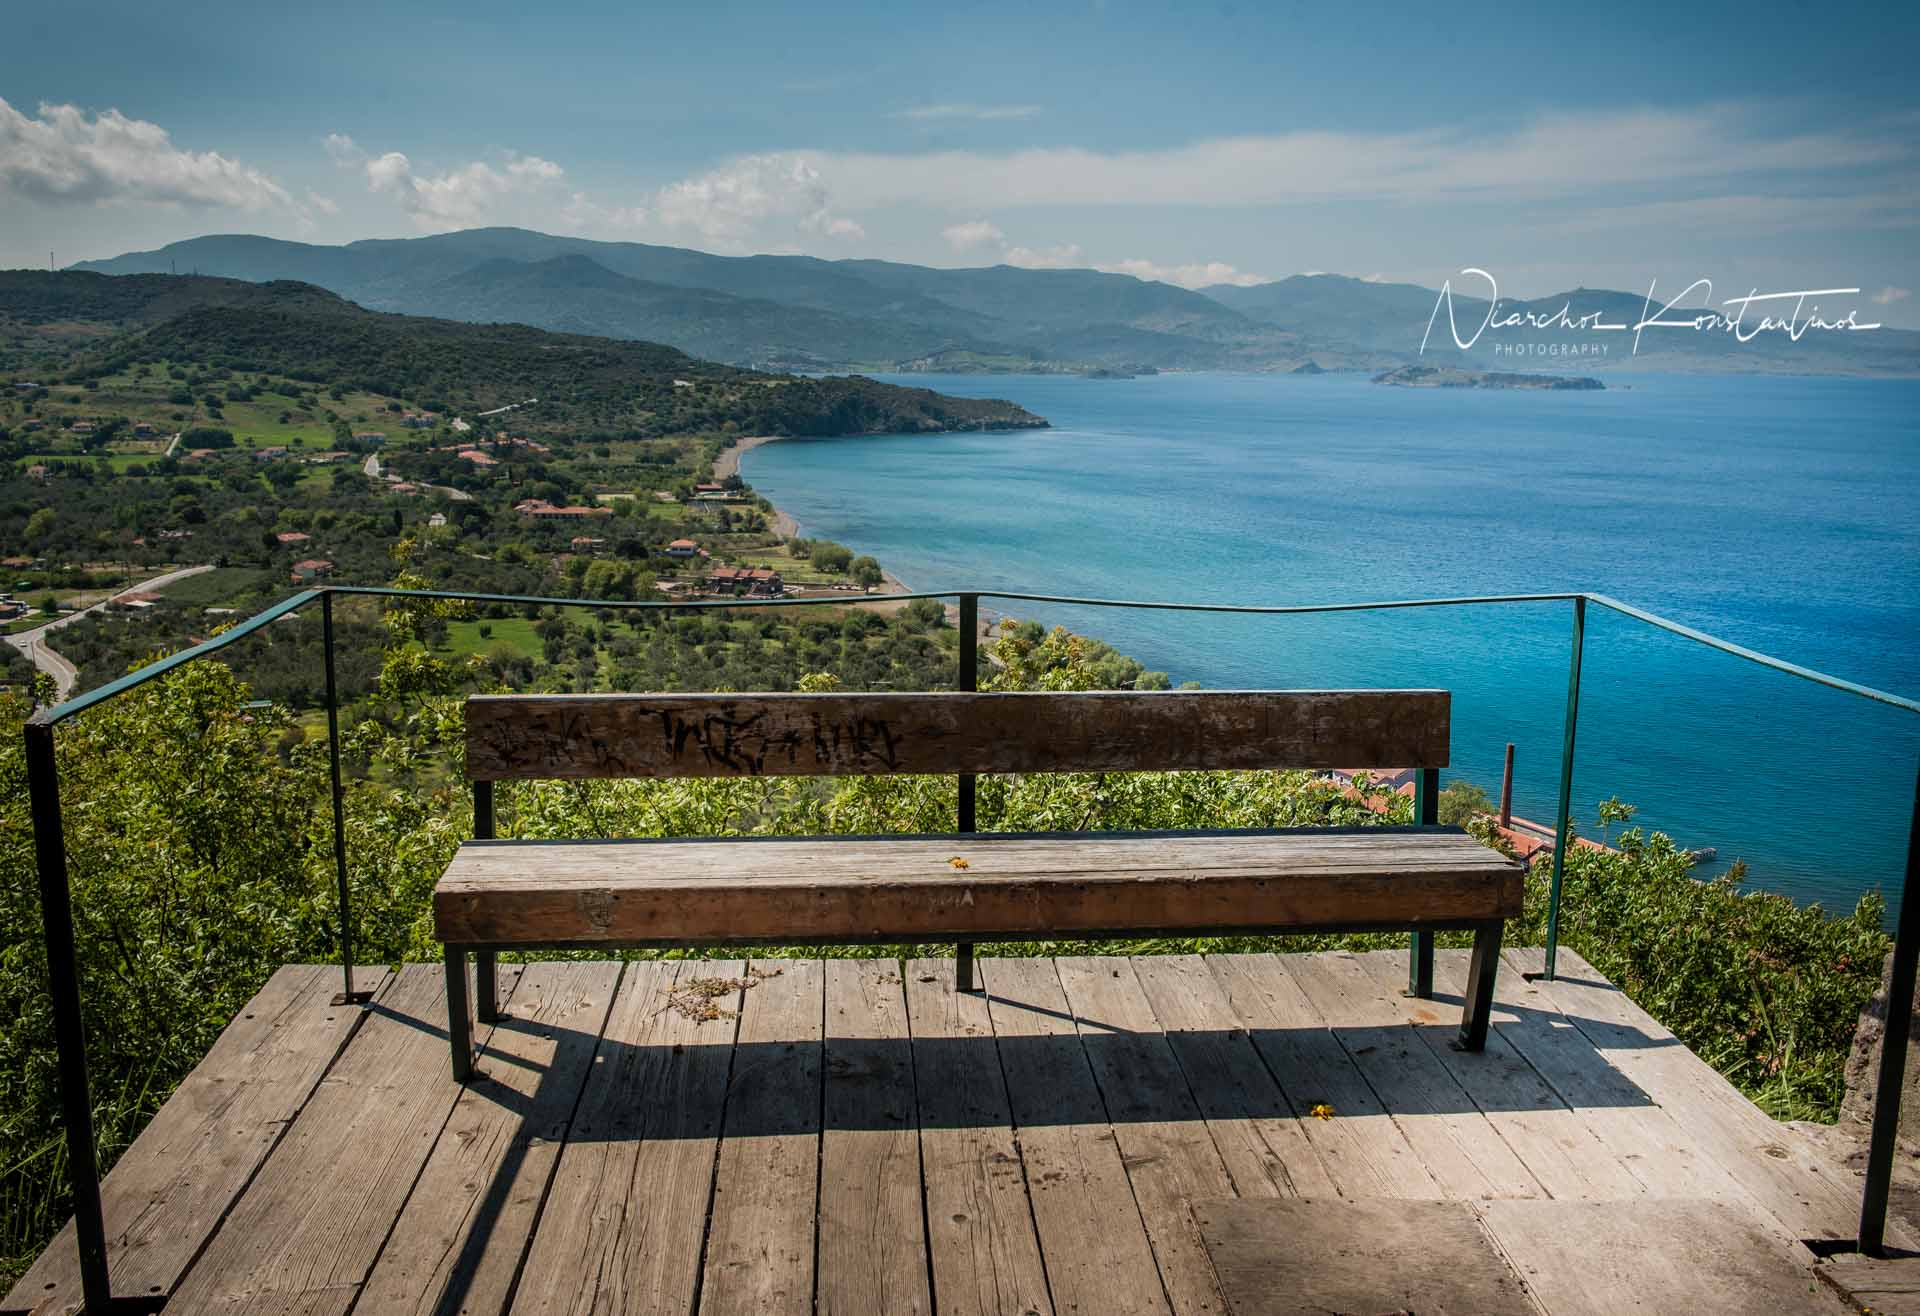 molyvos castle bench